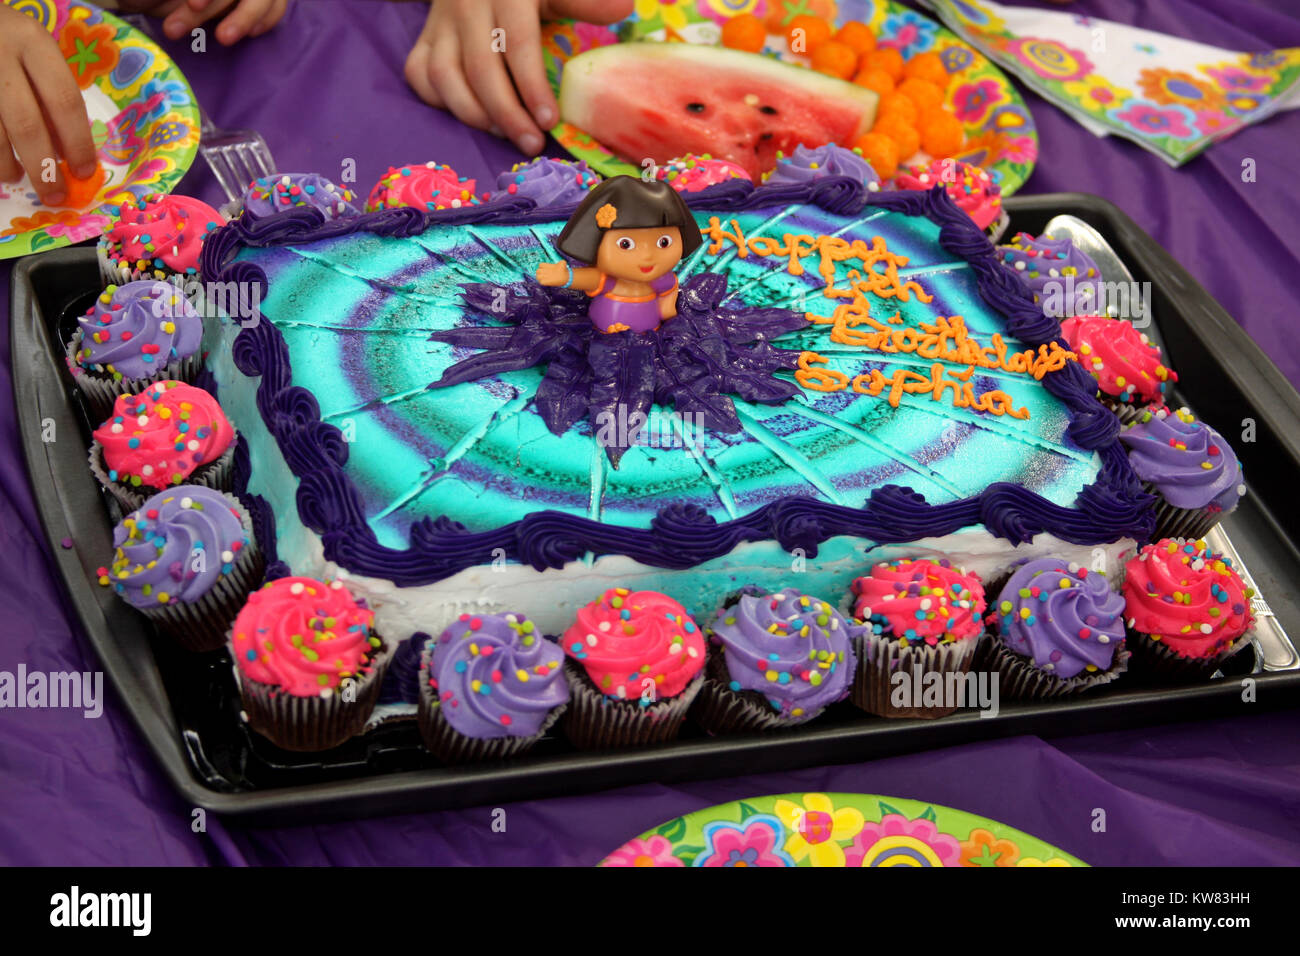 Astonishing Dora The Explorer Birthday Cake Stock Photo 170438173 Alamy Personalised Birthday Cards Veneteletsinfo